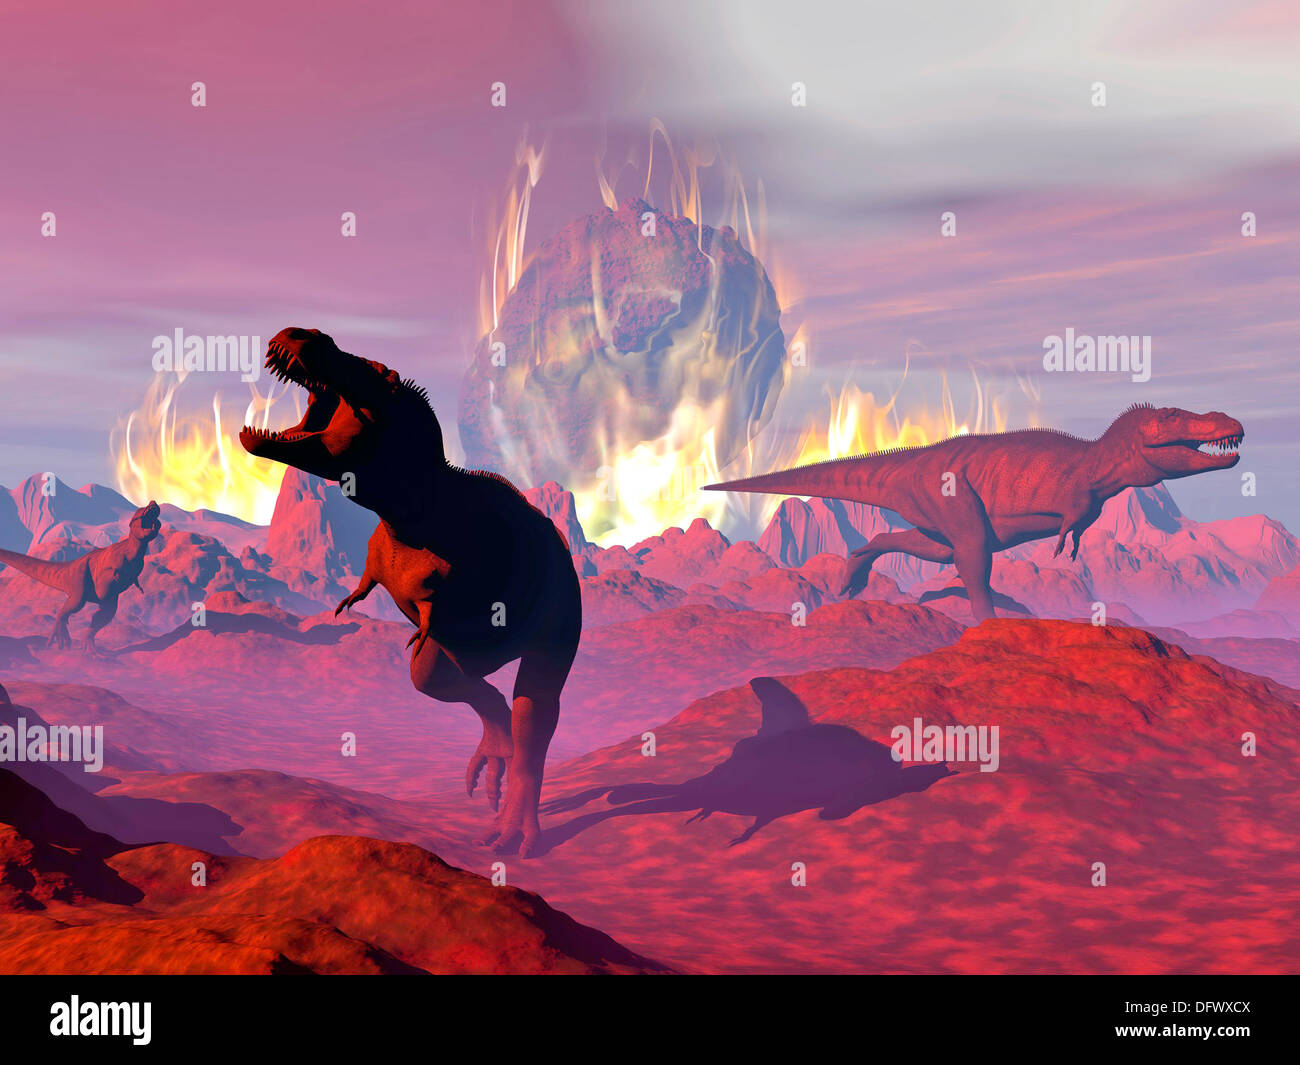 Tyrannosaurus Rex dinosaurs escaping the heat and fire of a big meteorite crash. - Stock Image